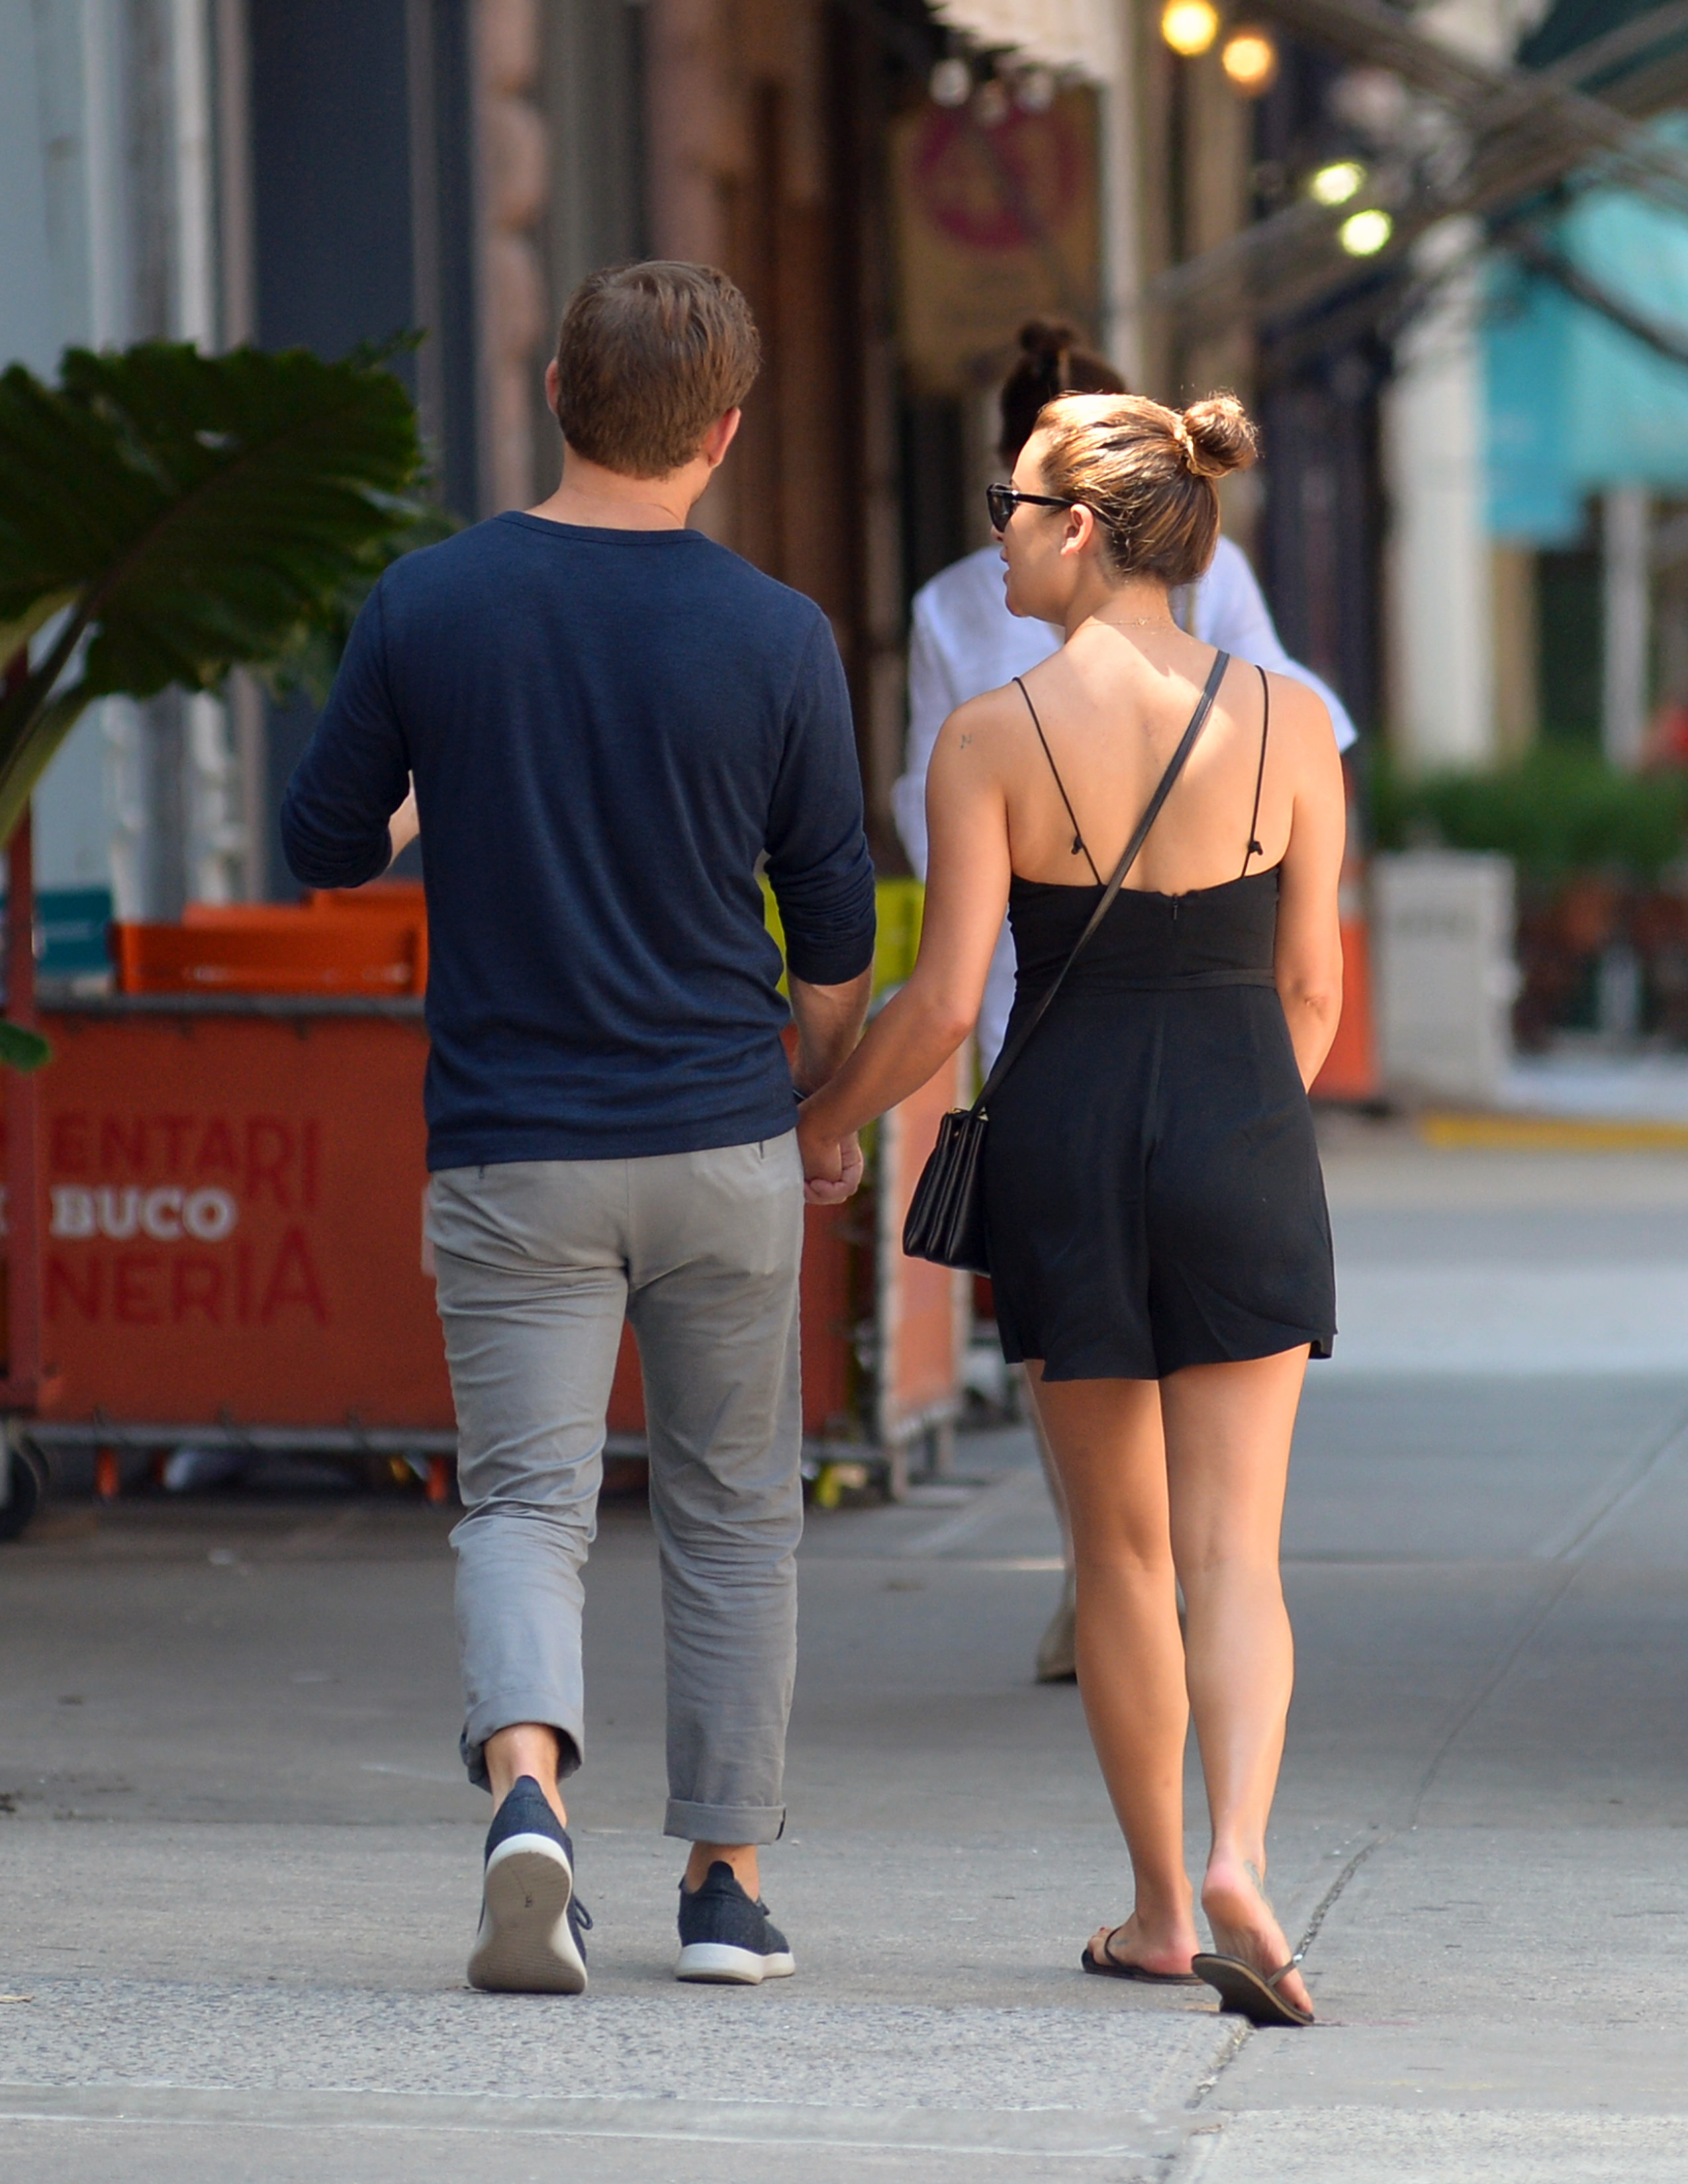 Lea Michele holds hands with Zandy Reich in New York City on July 18, 2017.